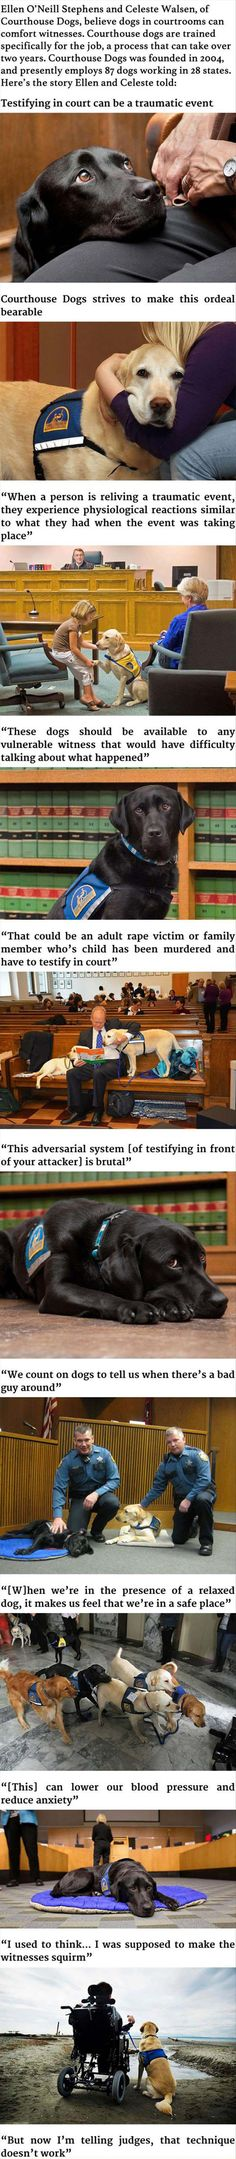 Why Have I Never Heard Of Courthouse Dogs Before – 13 Pics